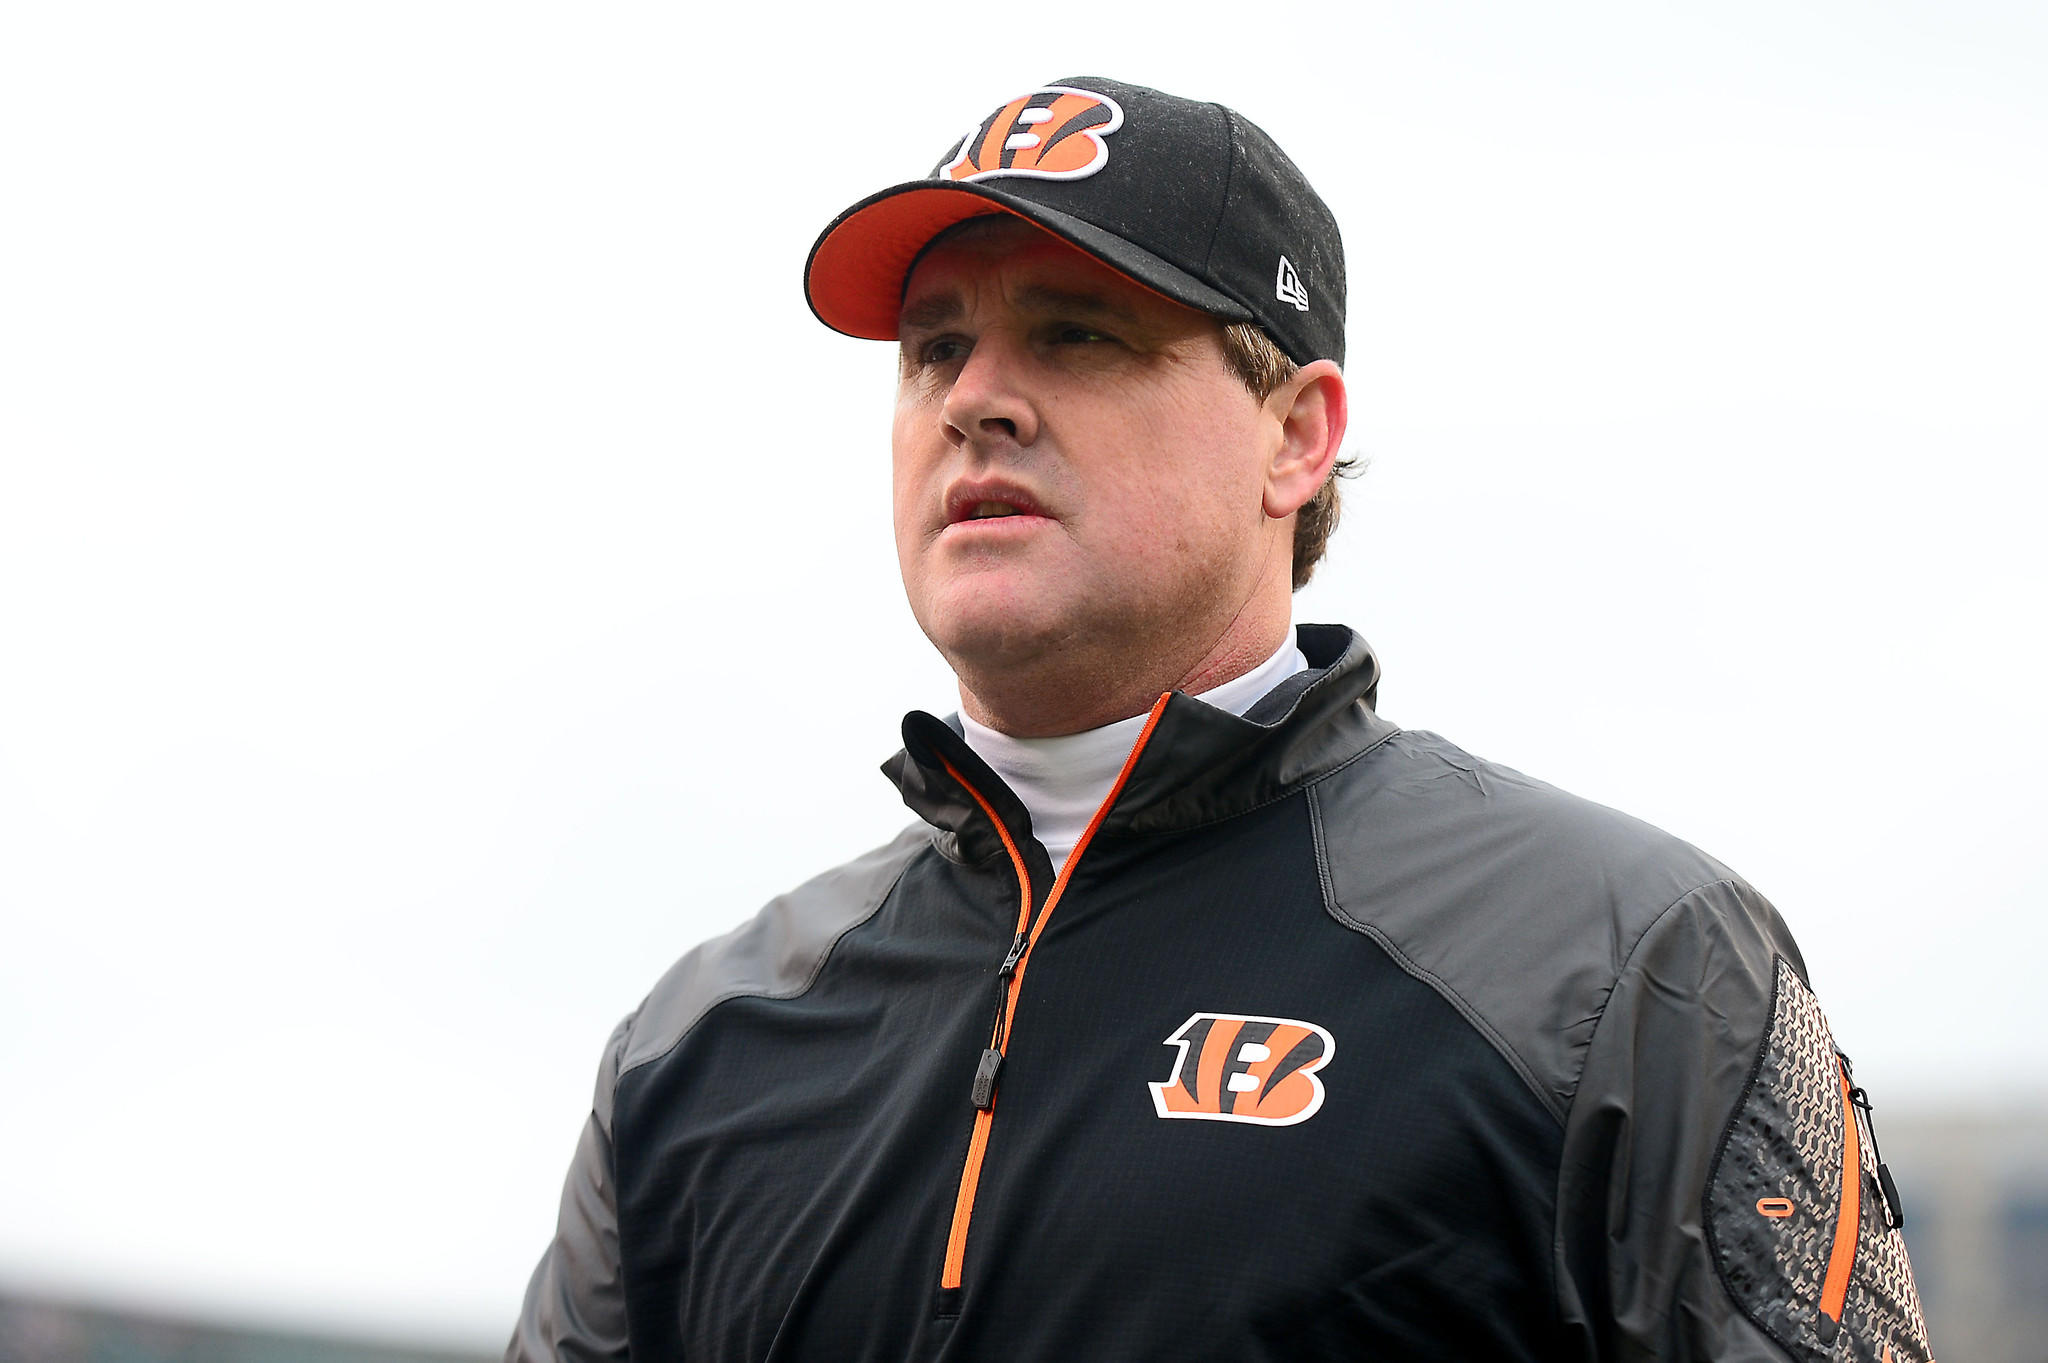 Cincinnati Bengals offensive coordinator Jay Gruden prior to the game against the Baltimore Ravens at Paul Brown Stadium.